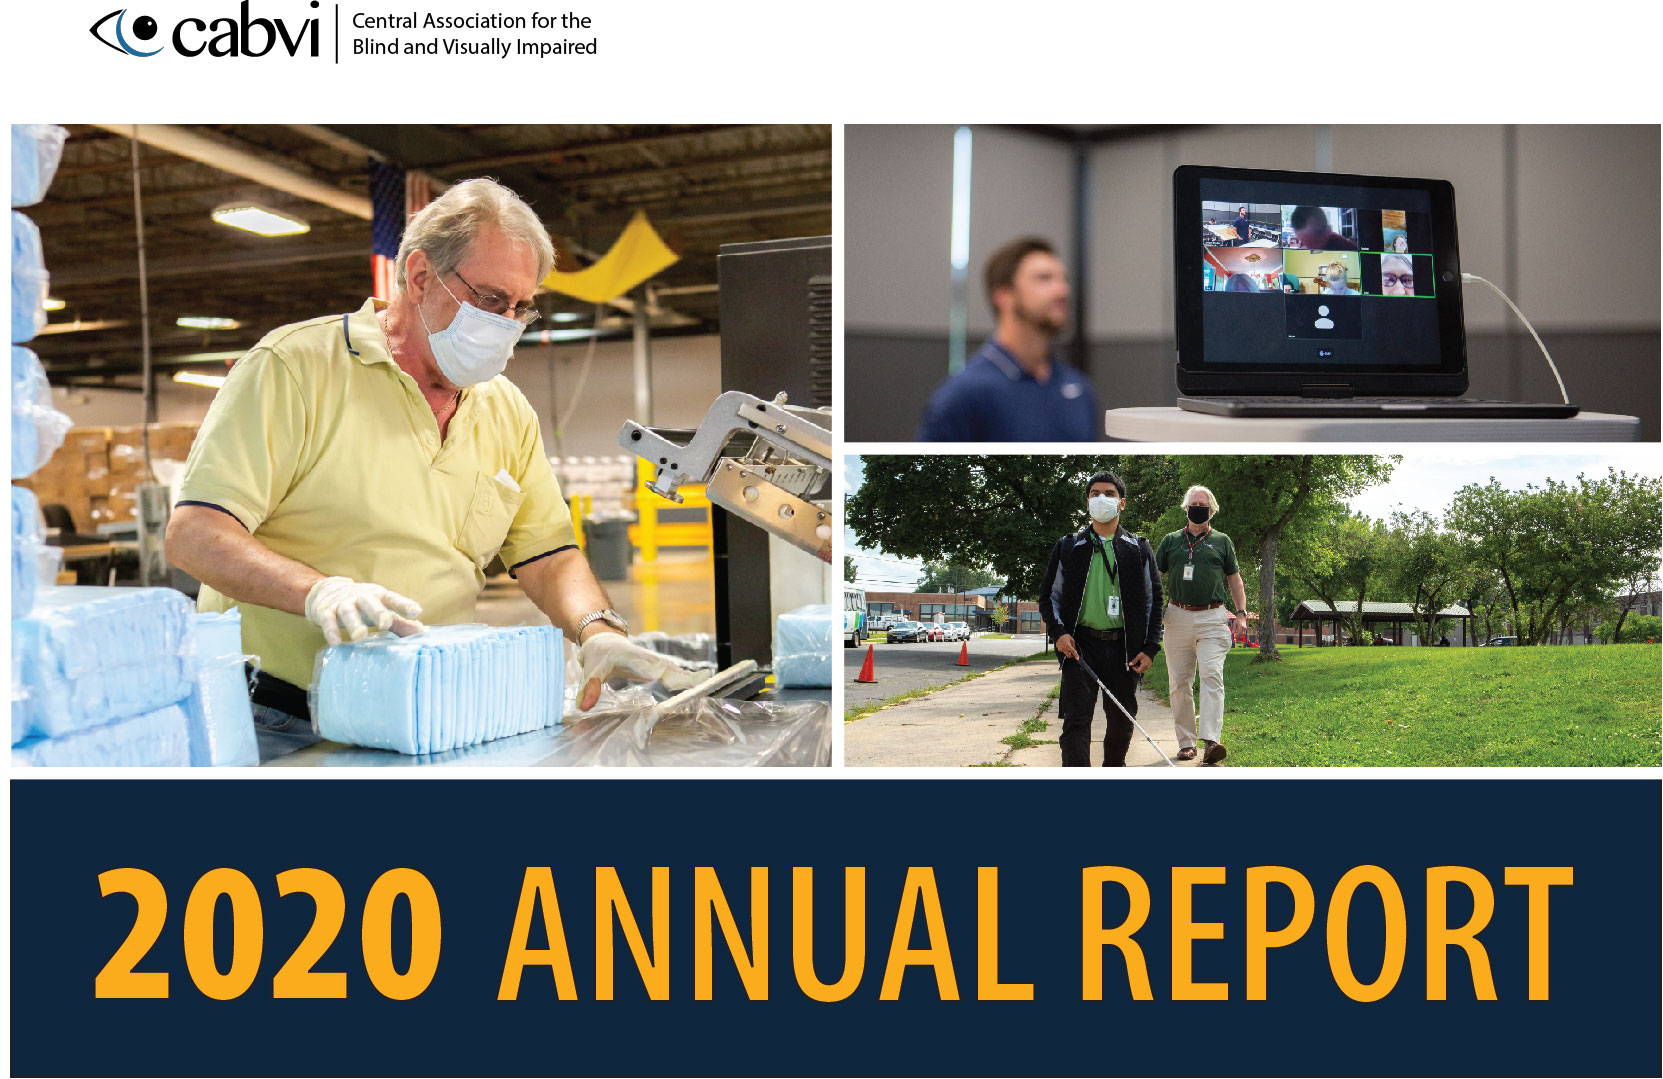 2020 Annual Report Cover with three images on it, one is wrapping incontinence product, second is givng a virtual lesson, third is doing an orientation and mobility instruction